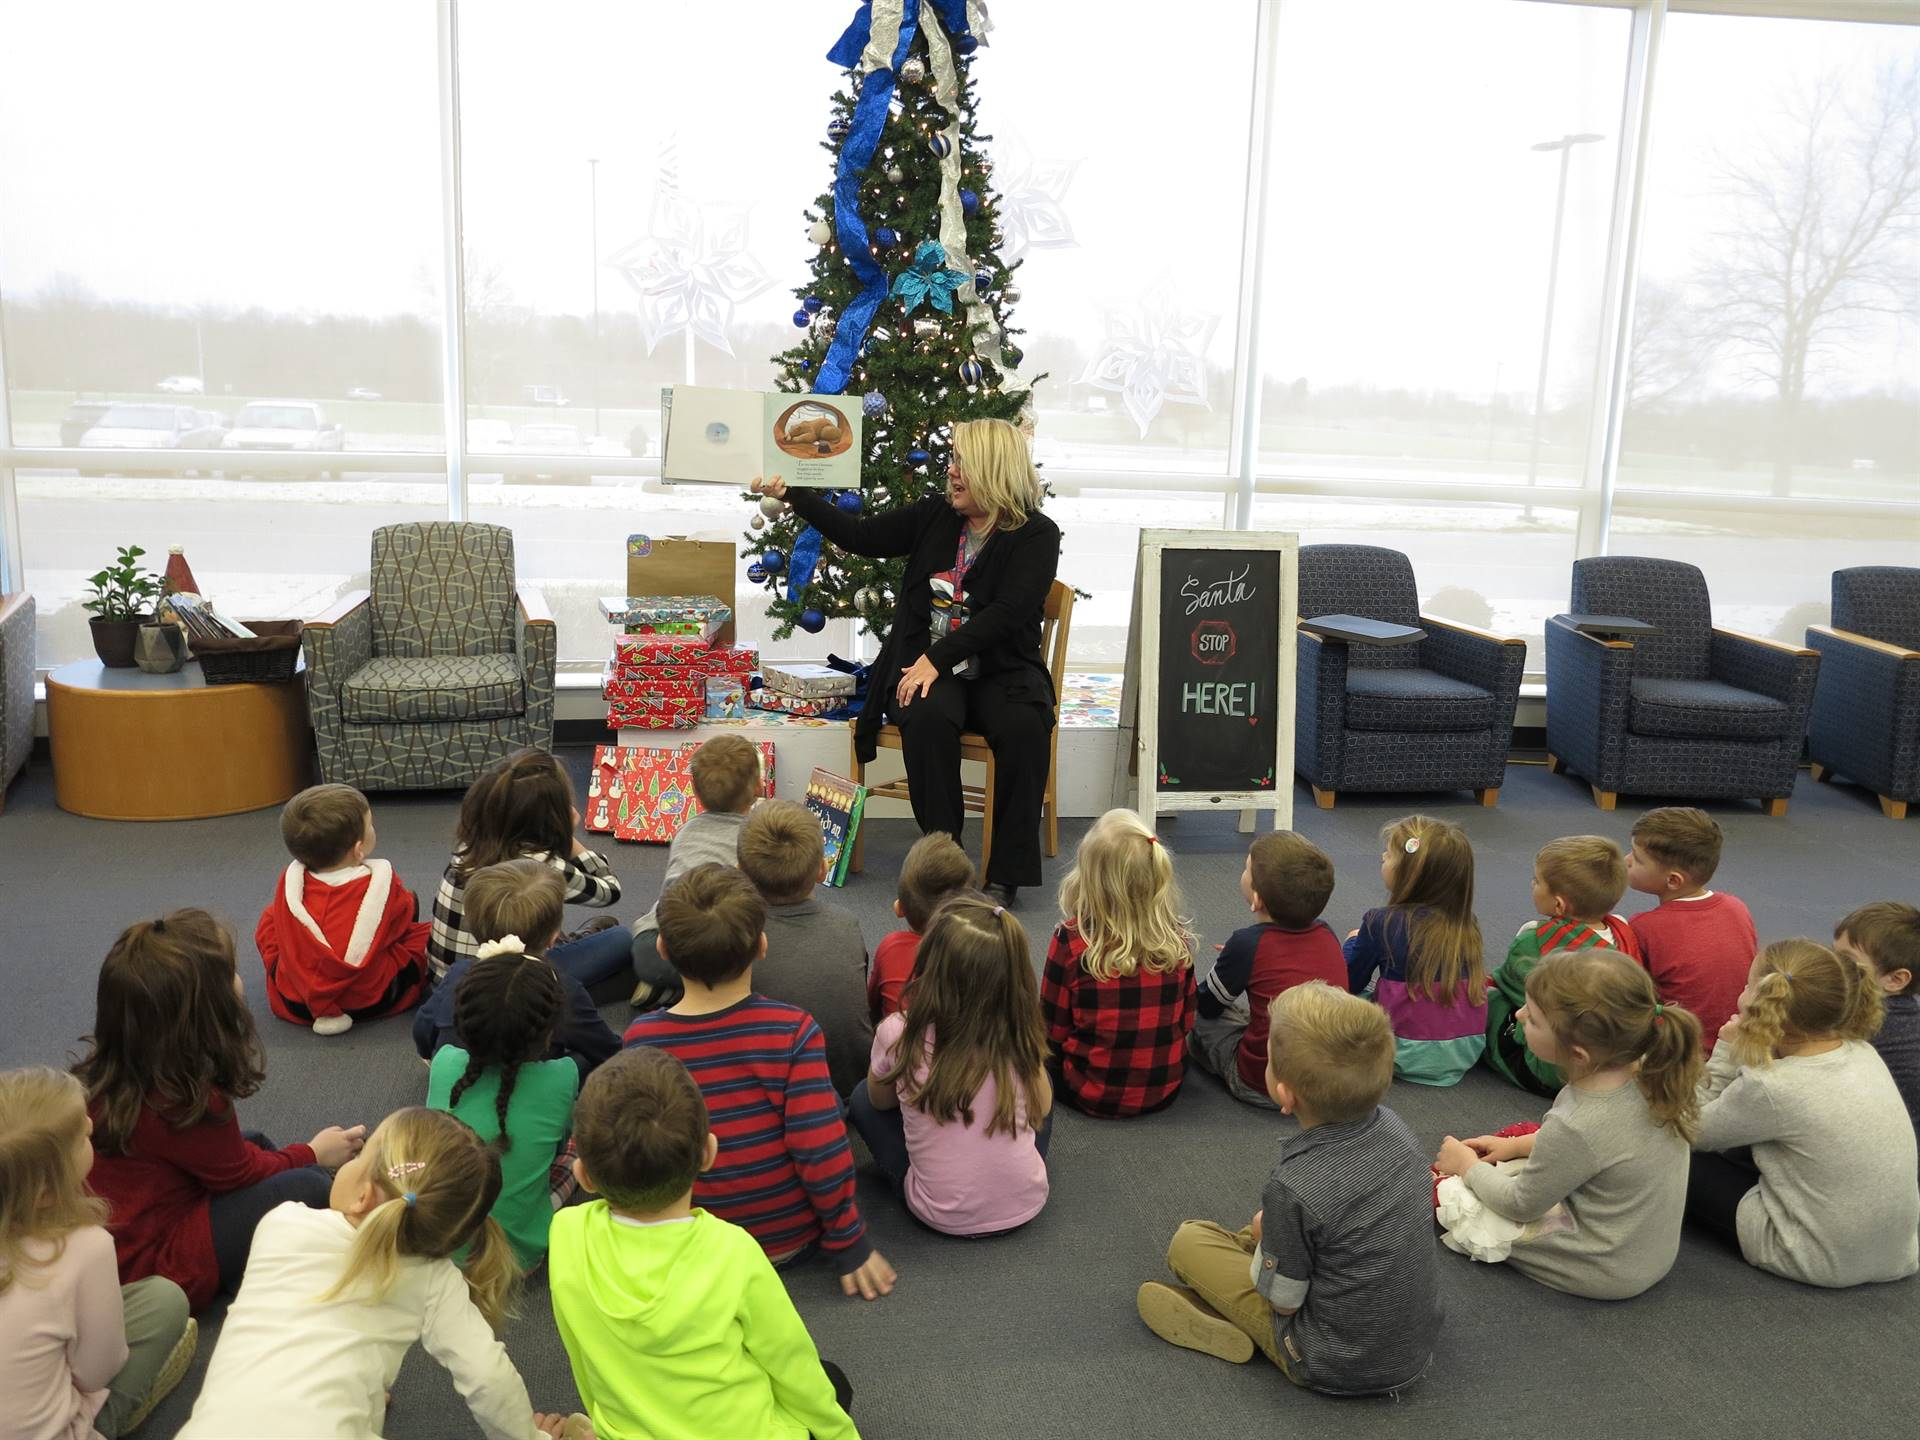 Storytime by the tree with preschoolers